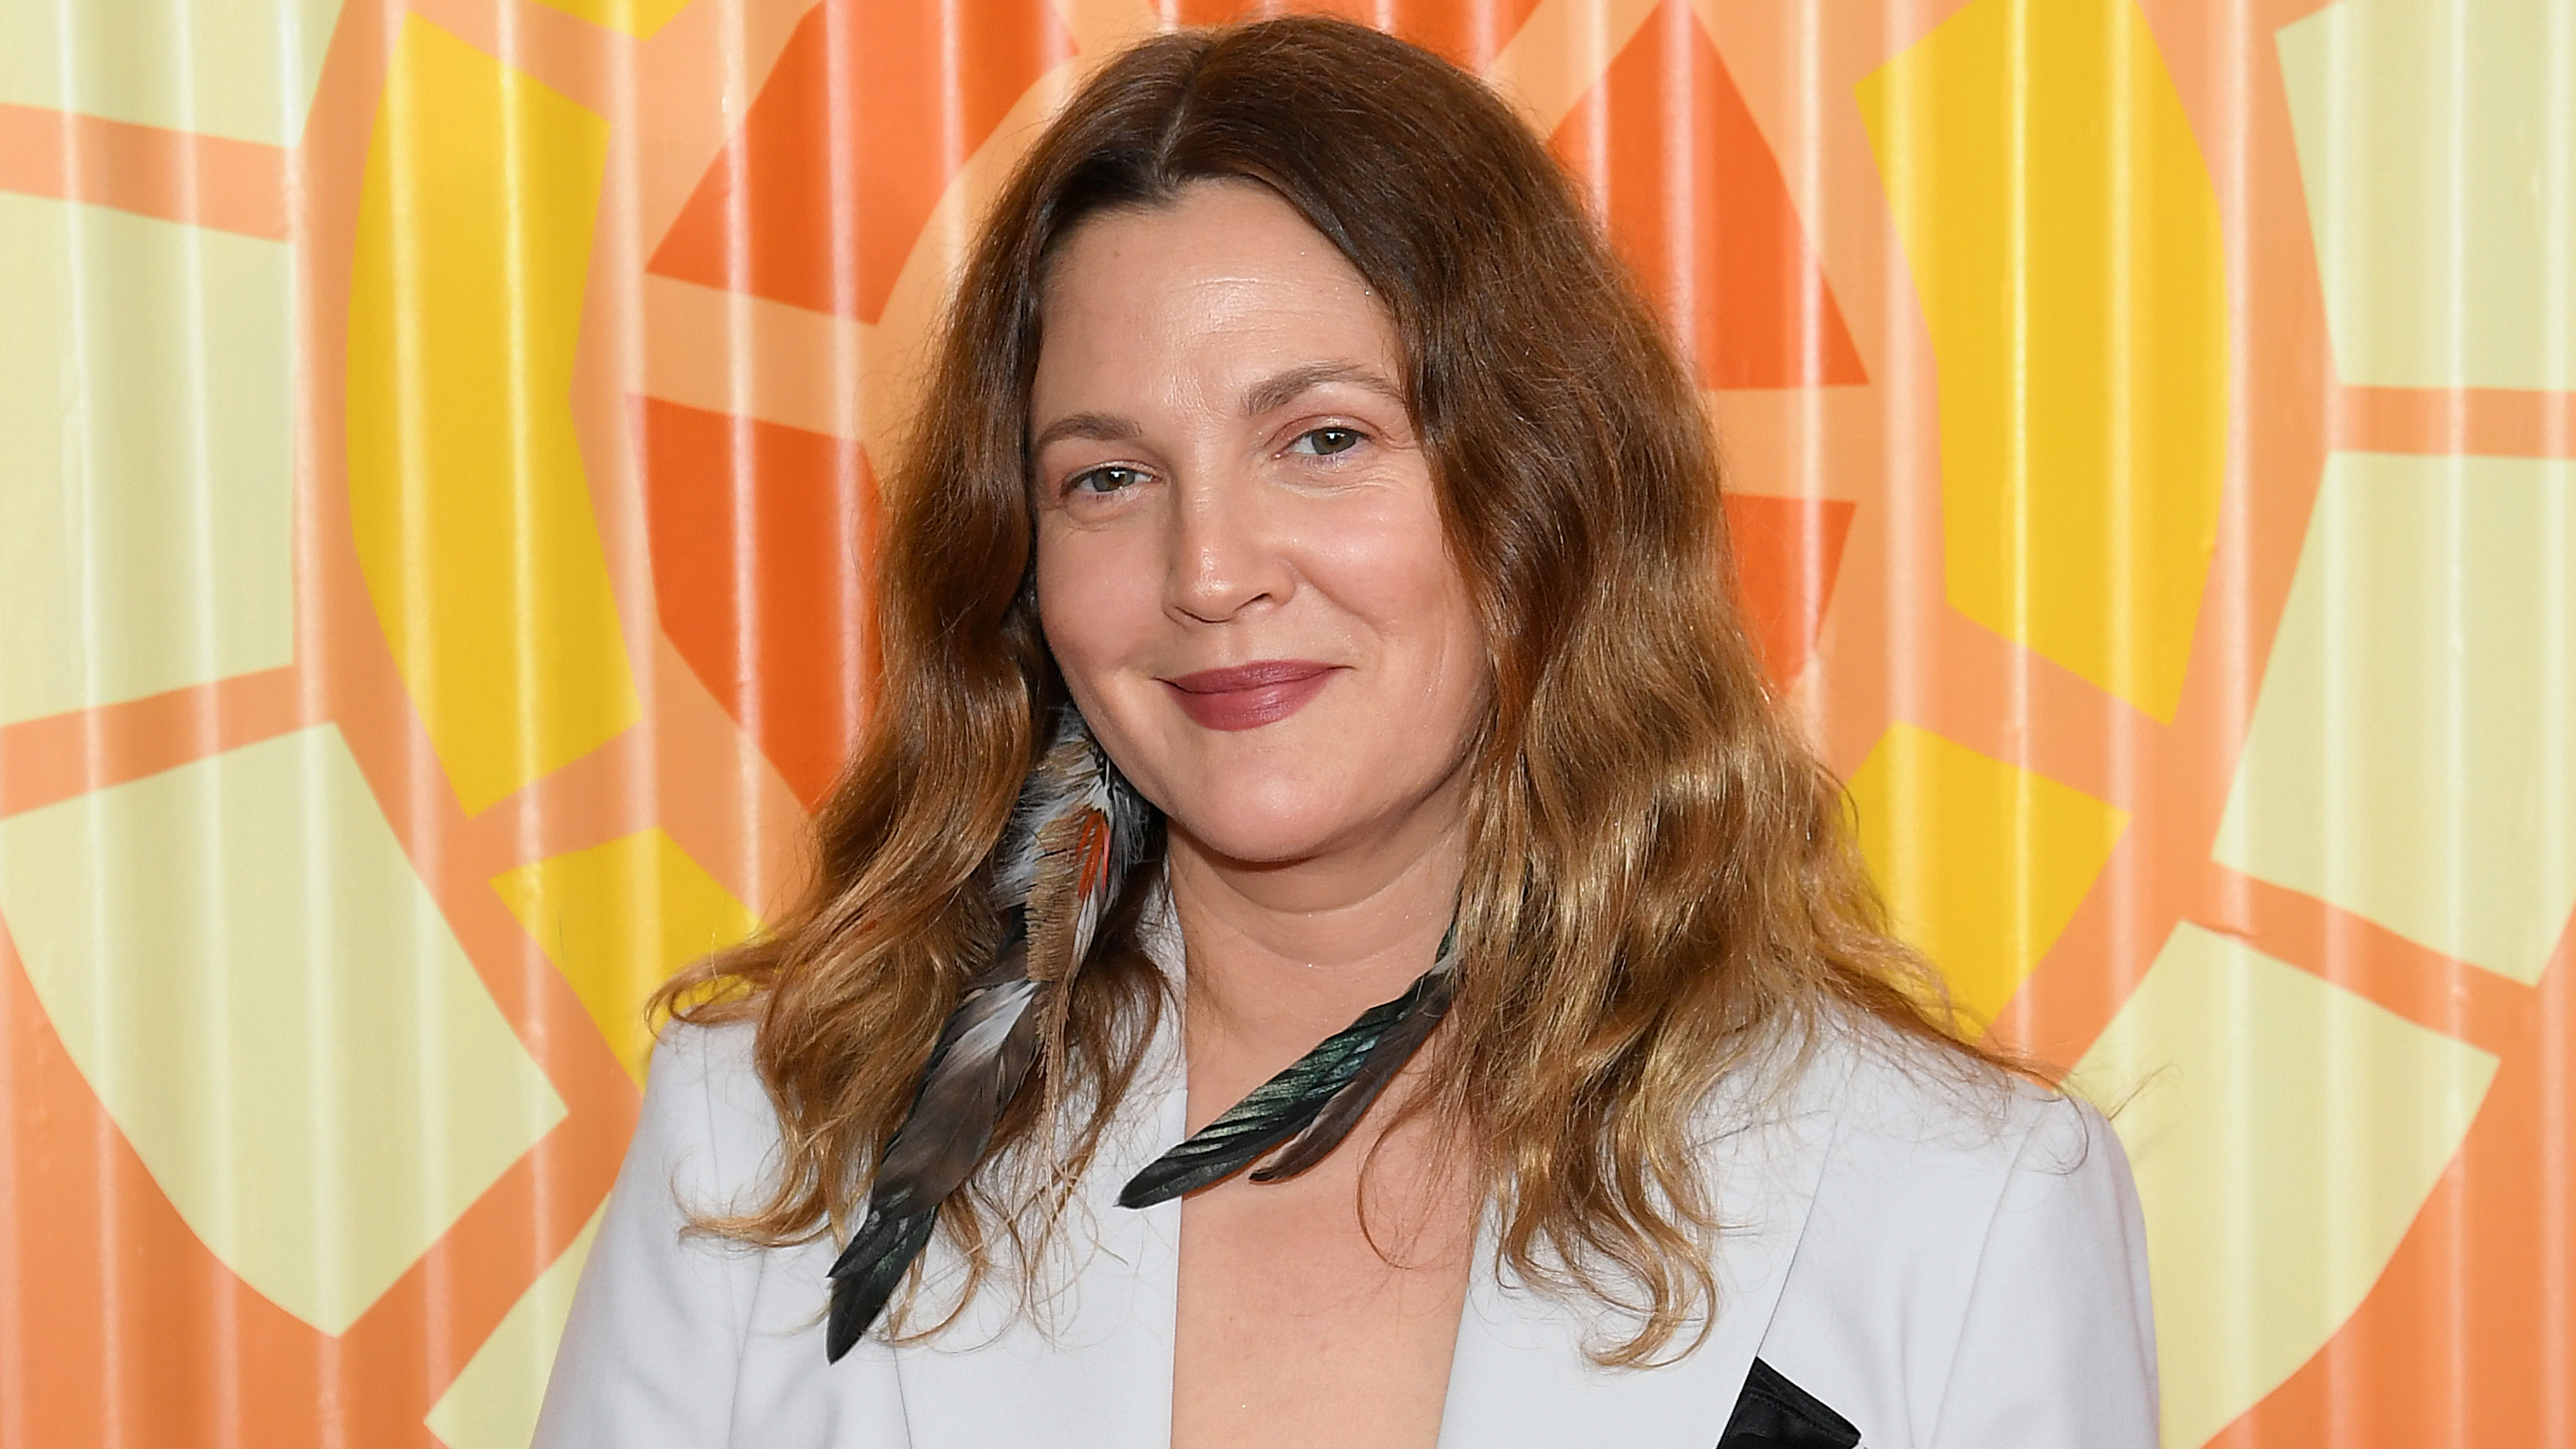 Drew Barrymore says she 'really did not take divorce well' after past family struggles